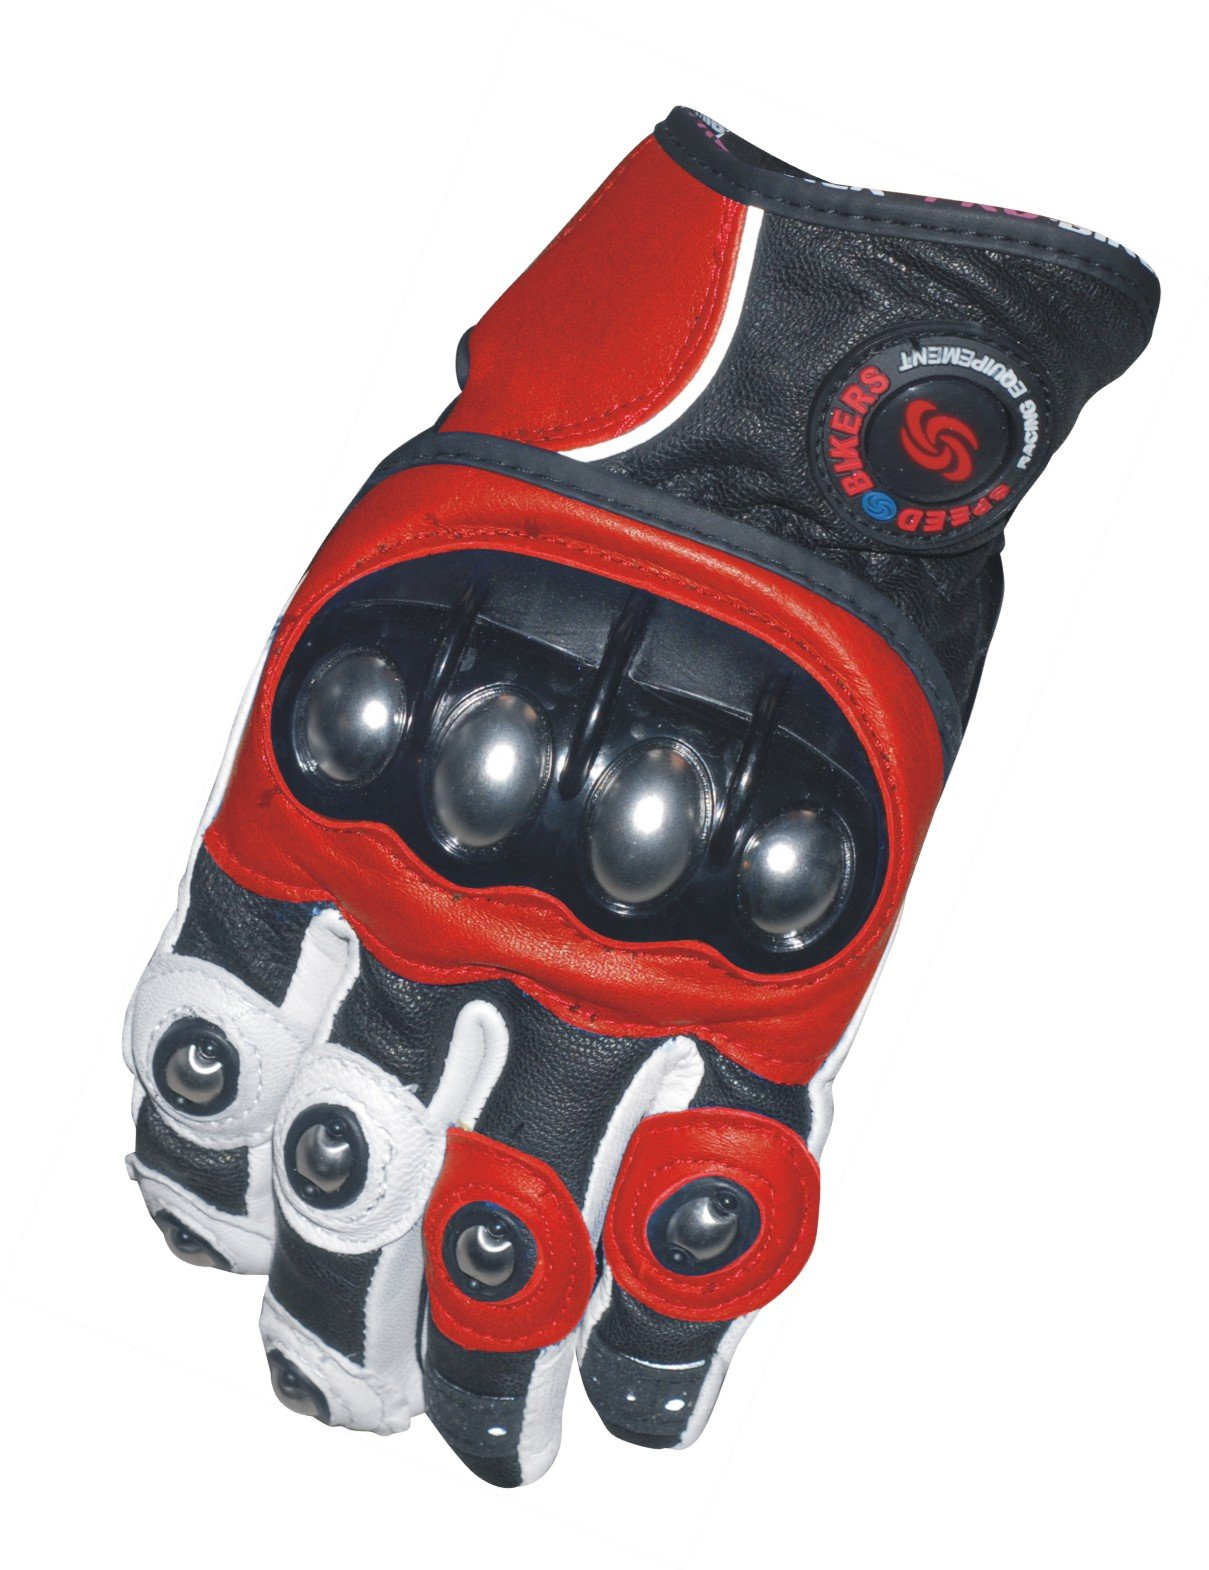 Dernen Sports Leather Motorcycle Racing Motorbike Gloves (Red, L)